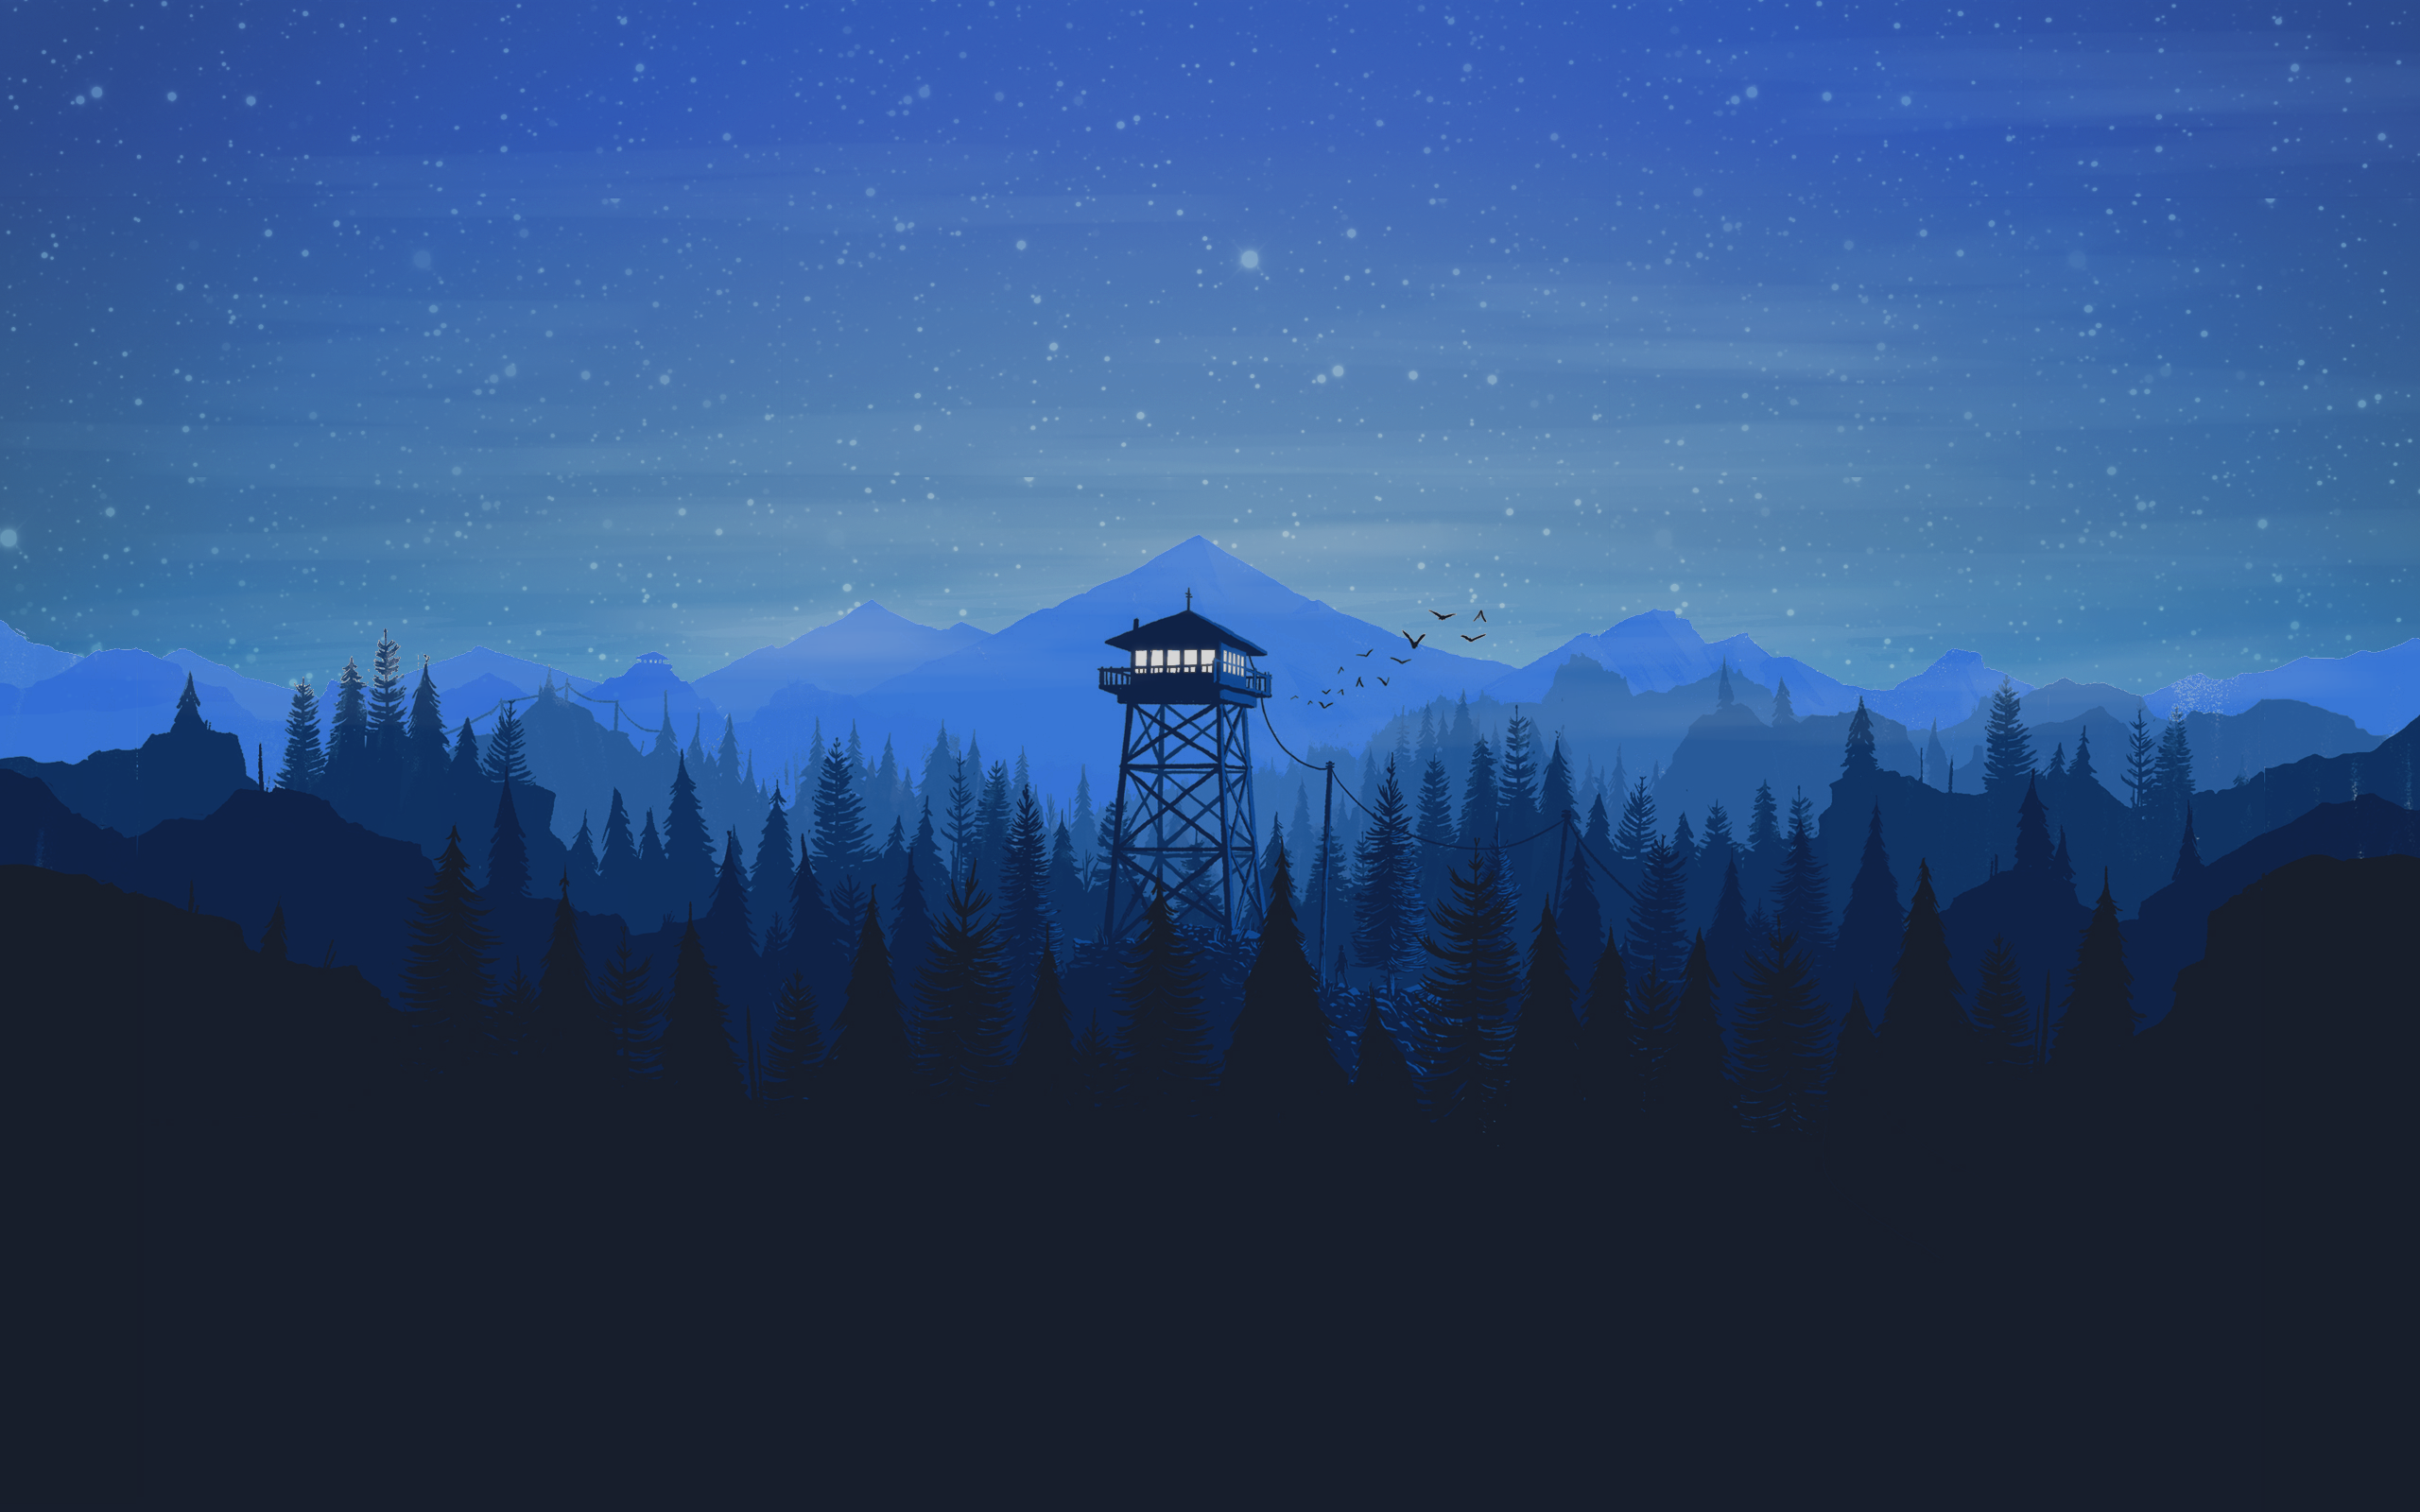 Night-Firewatch-1920x1080-Need-iPhone-S-Plus-Background-for-IPhoneSPlus-Follow-wallpaper-wp3609079